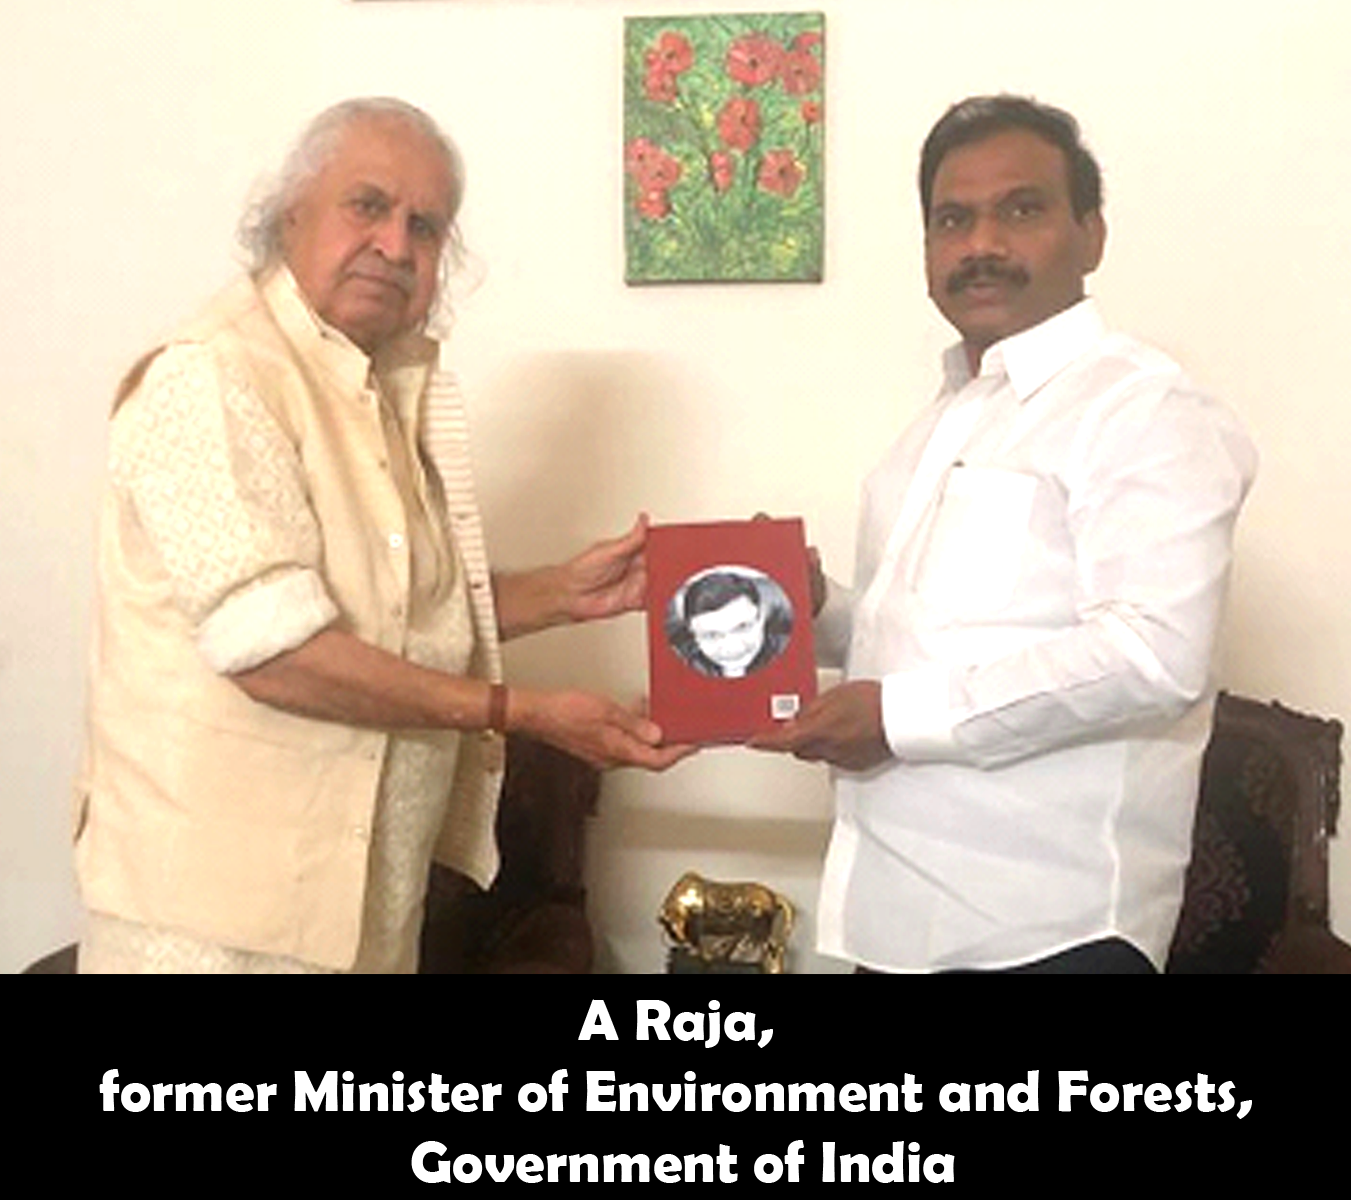 A Raja former Minister of Environment and Forests, Government of India releasing the secrets of Jyotish Gems